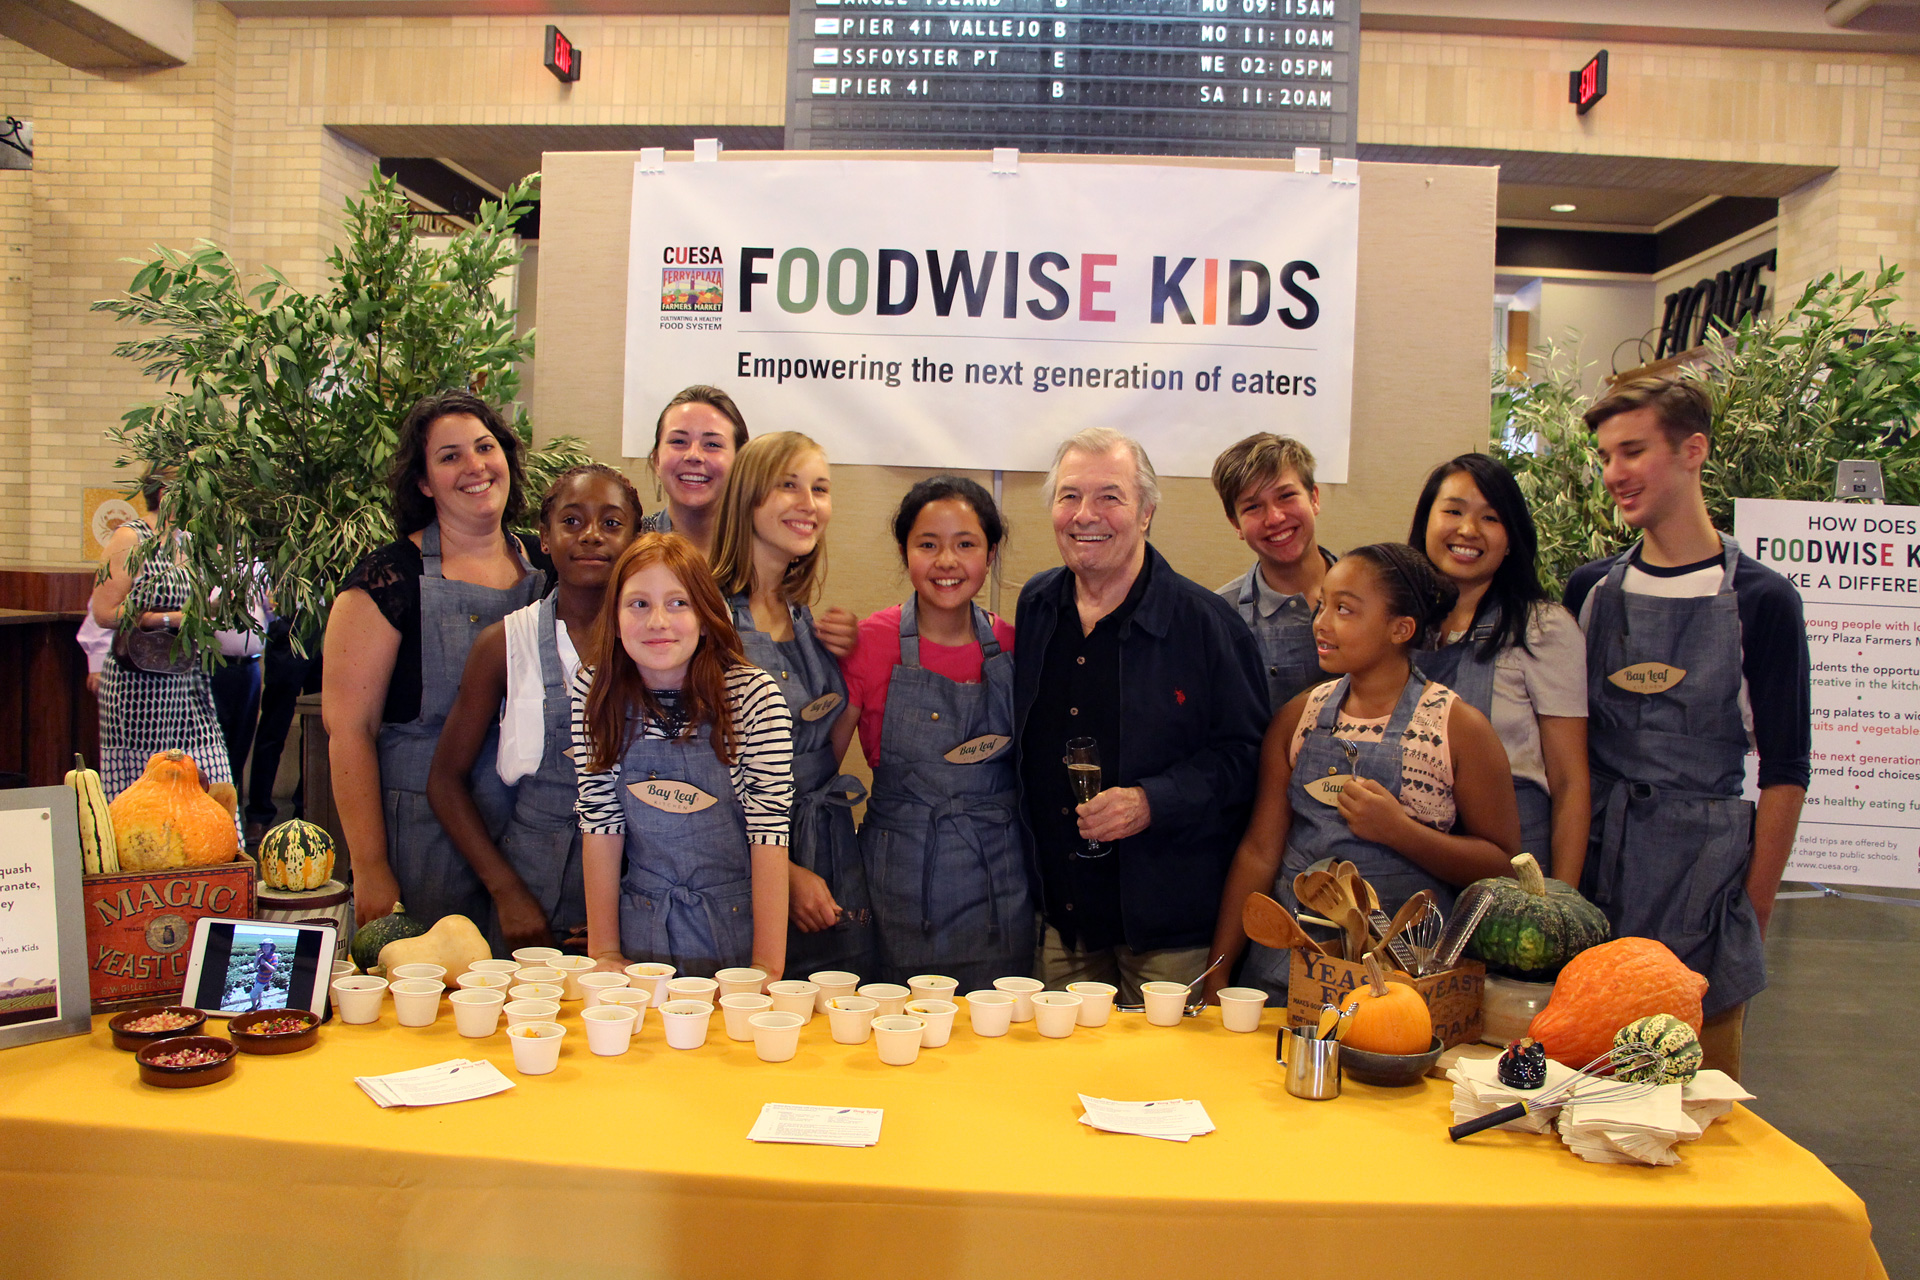 Jacques Pépin visits the Foodwise Kids booth at CUESA's Sunday Supper.